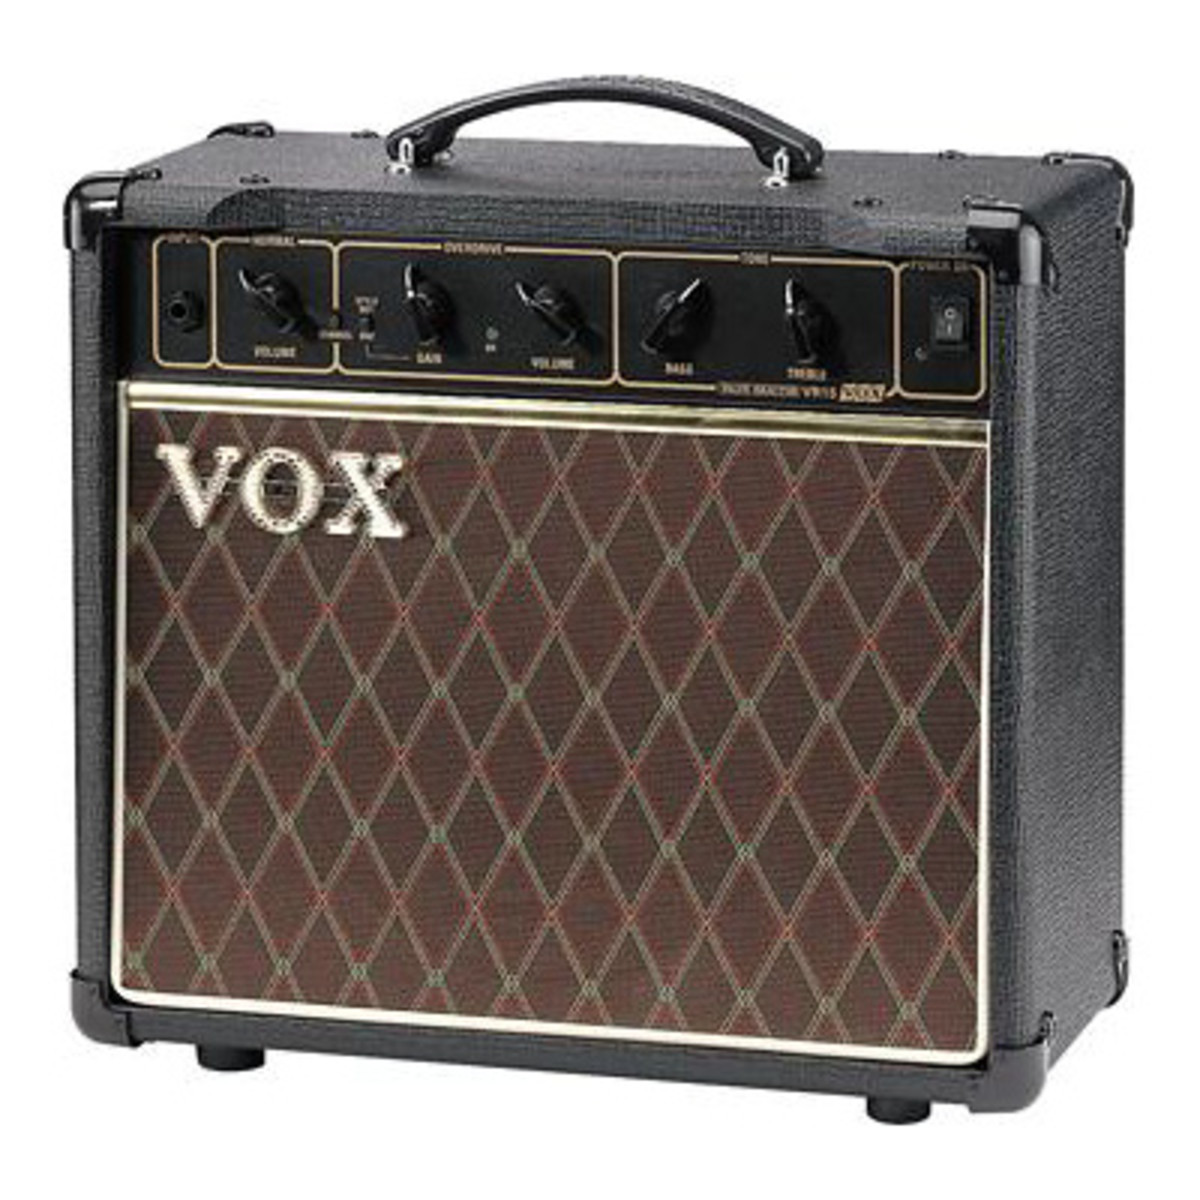 disc vox vr15 valve reactor guitar amp at gear4music. Black Bedroom Furniture Sets. Home Design Ideas